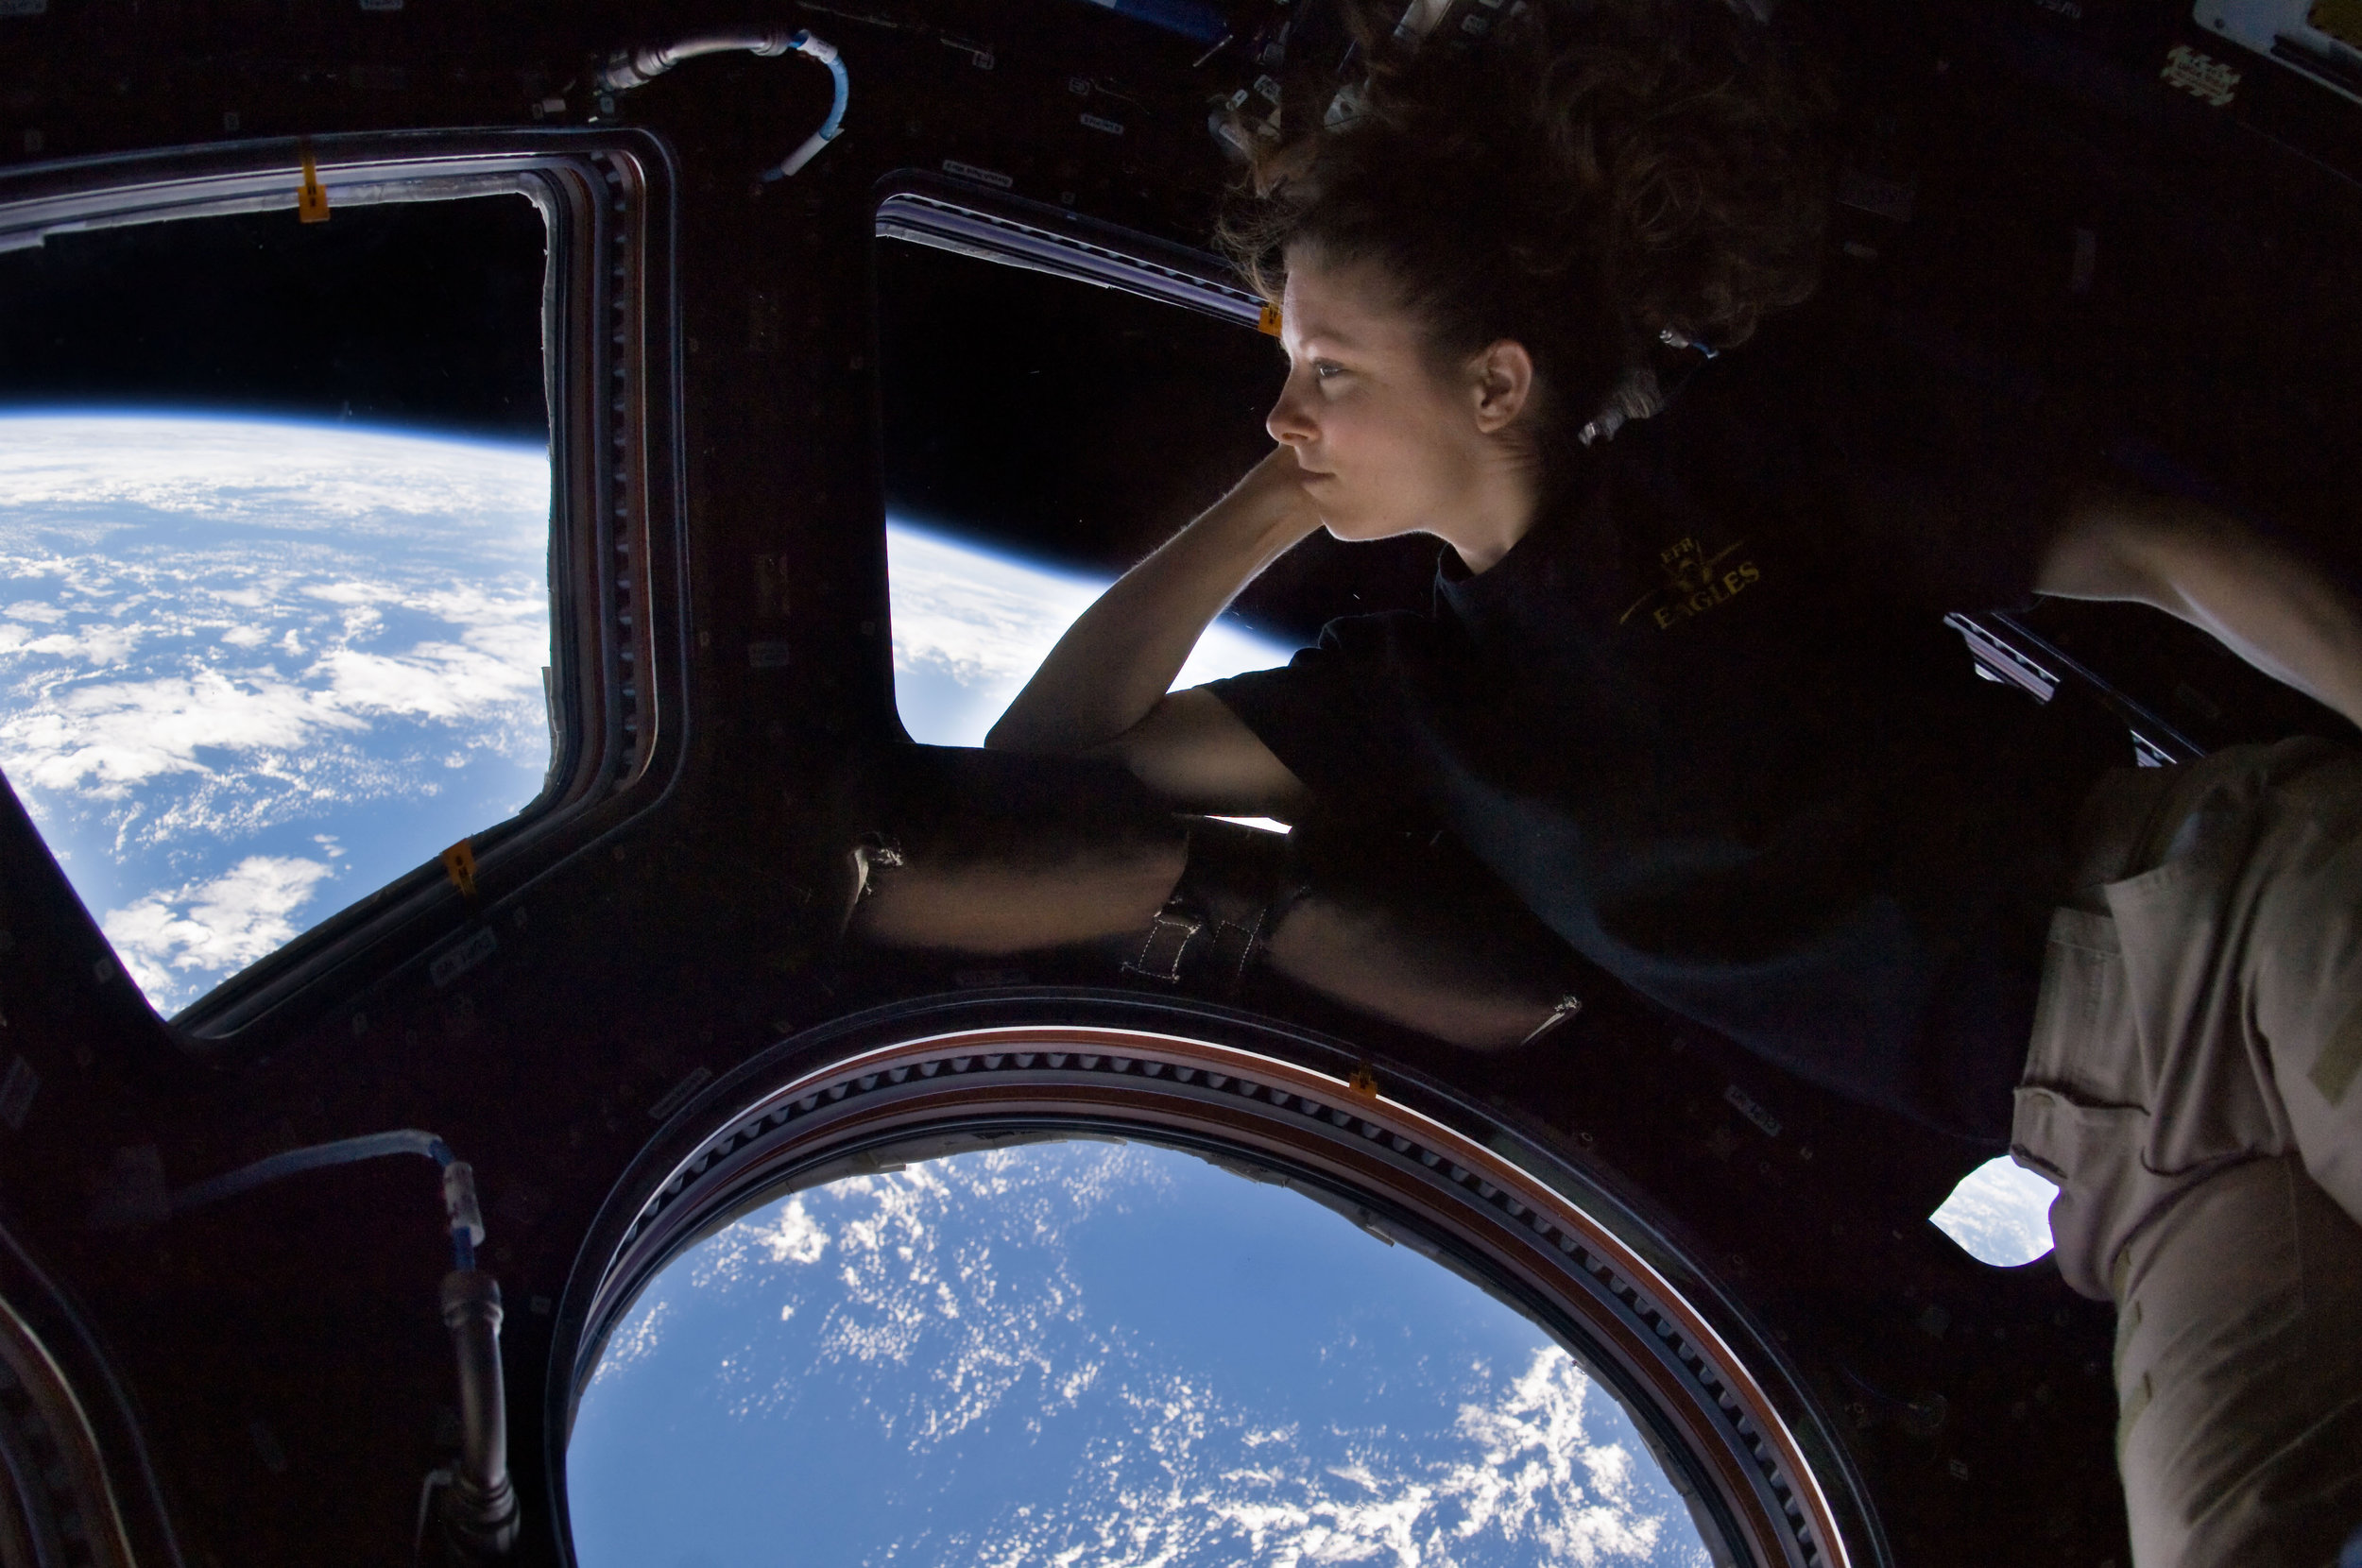 Astronaut Tracy Caldwell Dyson enjoys the view of Earth from the International Space Station, in 2010.   T   racy Caldwell Dyson, NASA/Wikimedia Commons  (public domain)